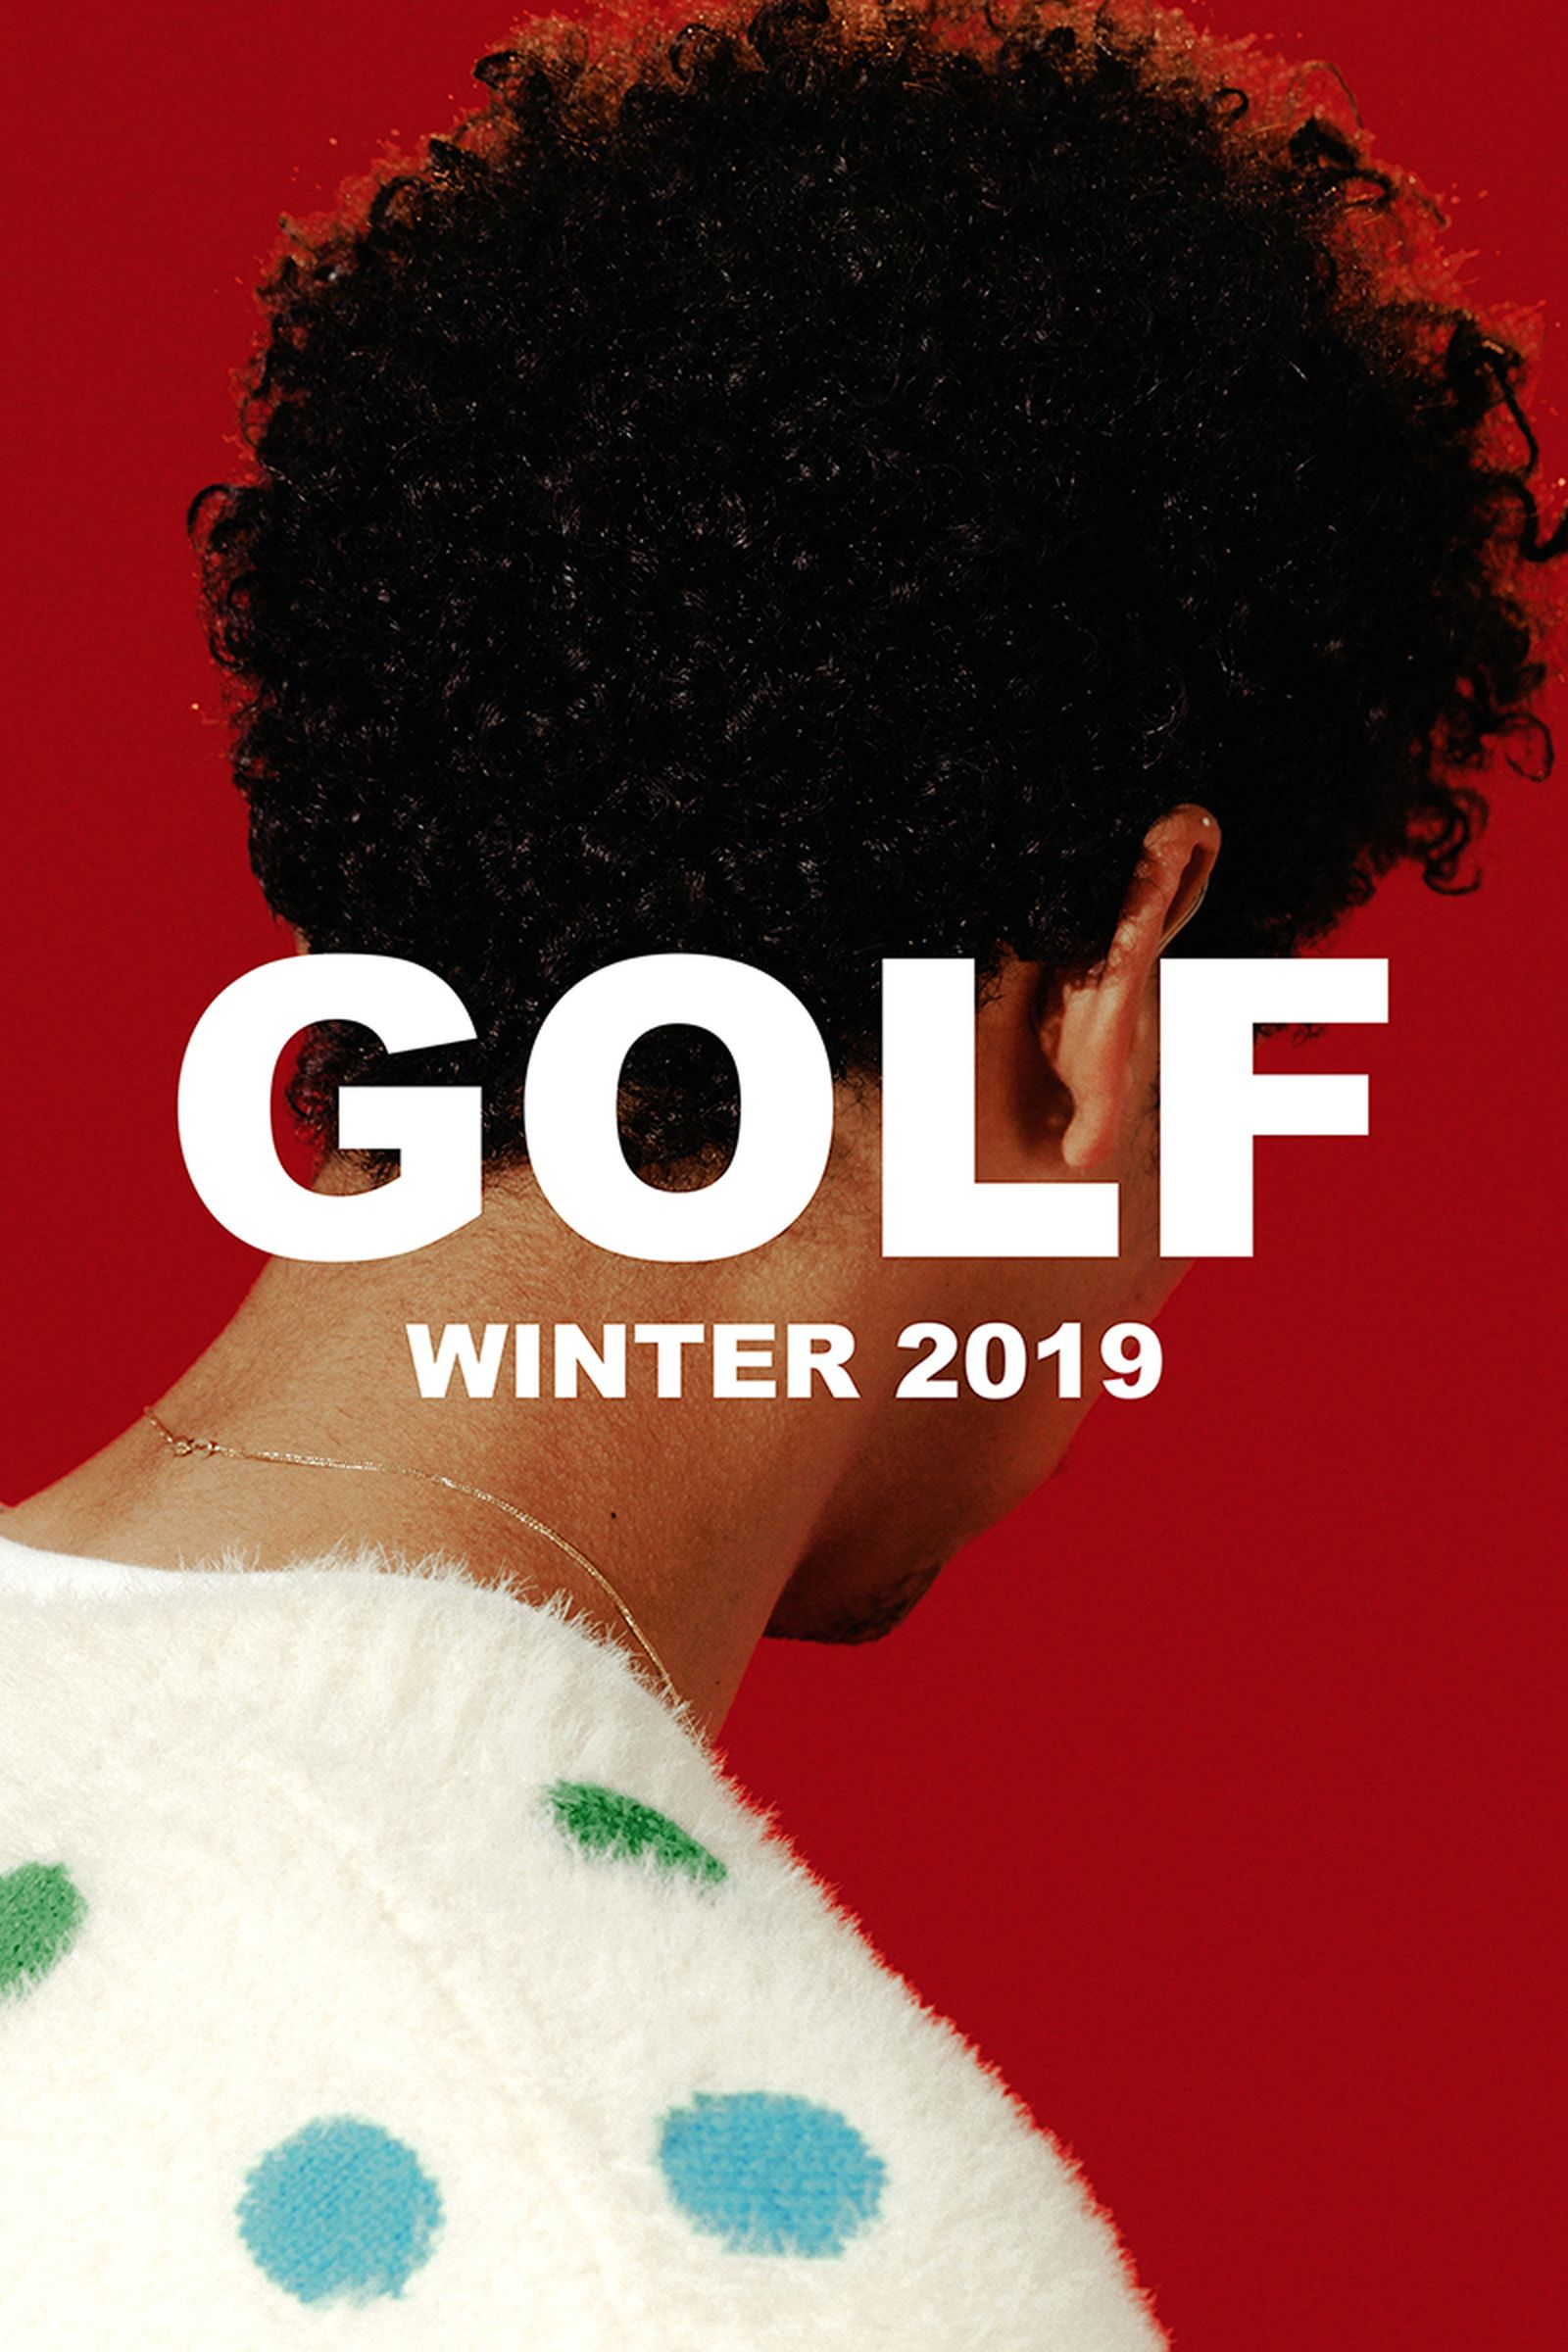 GOLF WANG Winter 2019 collection